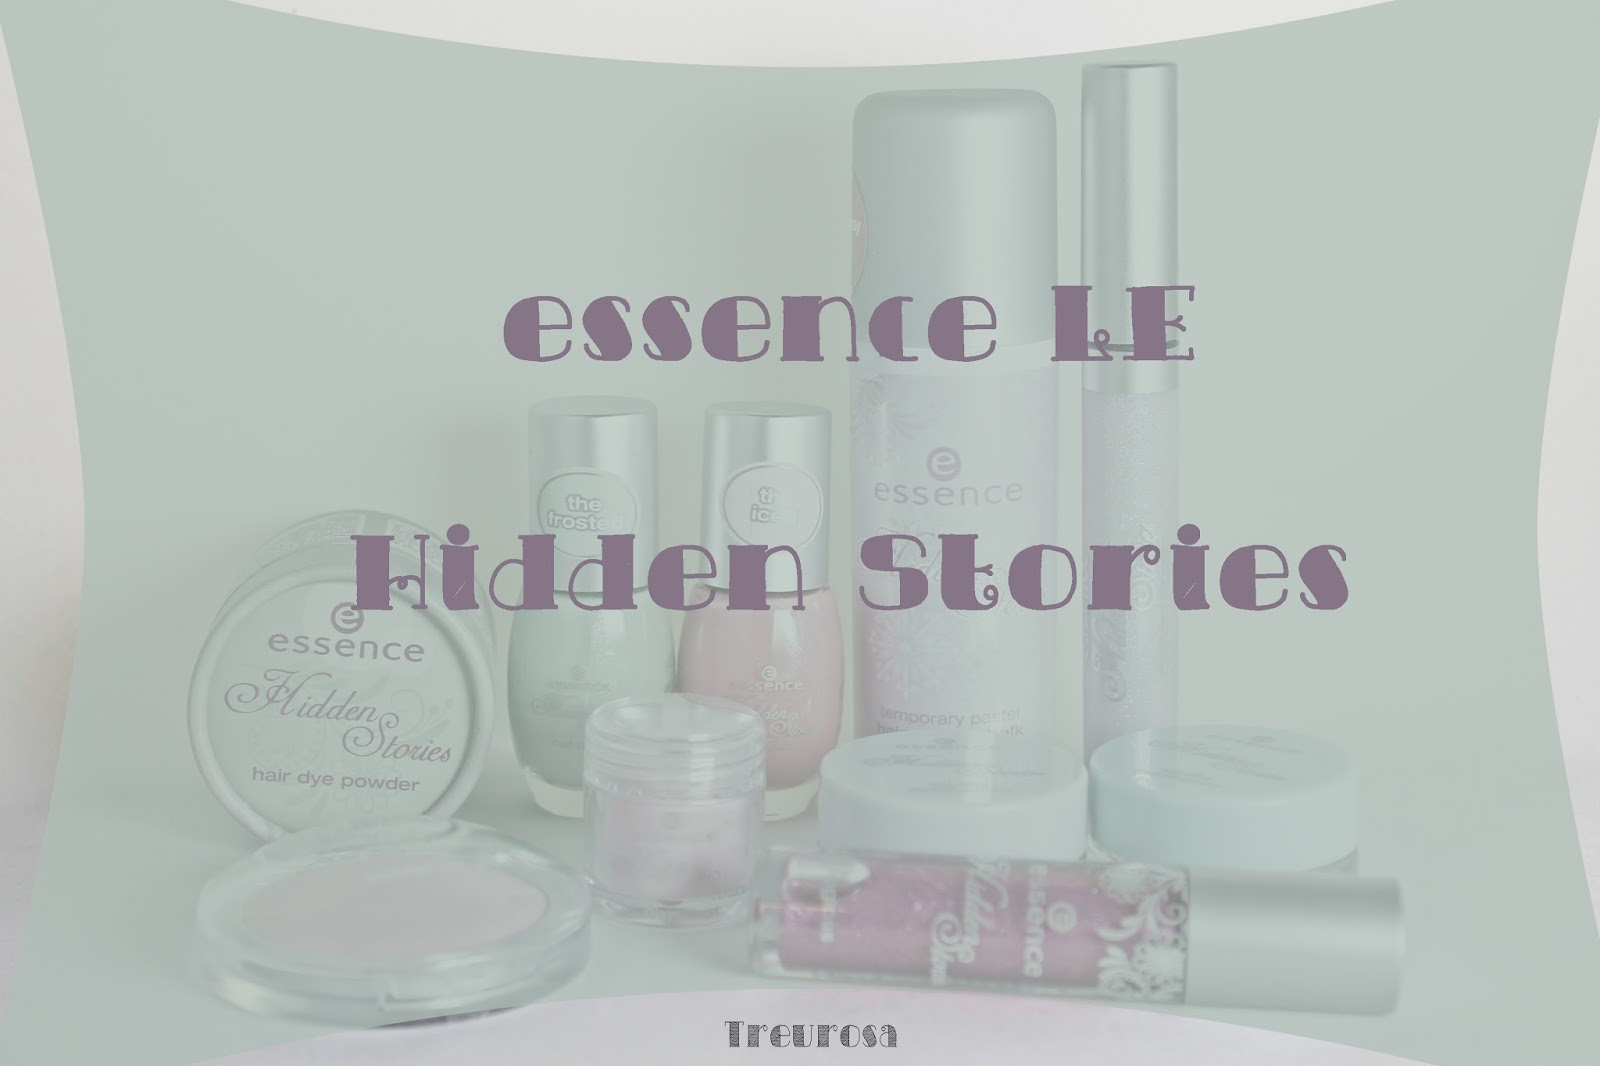 Essence Limited Edition - Hidden Stories